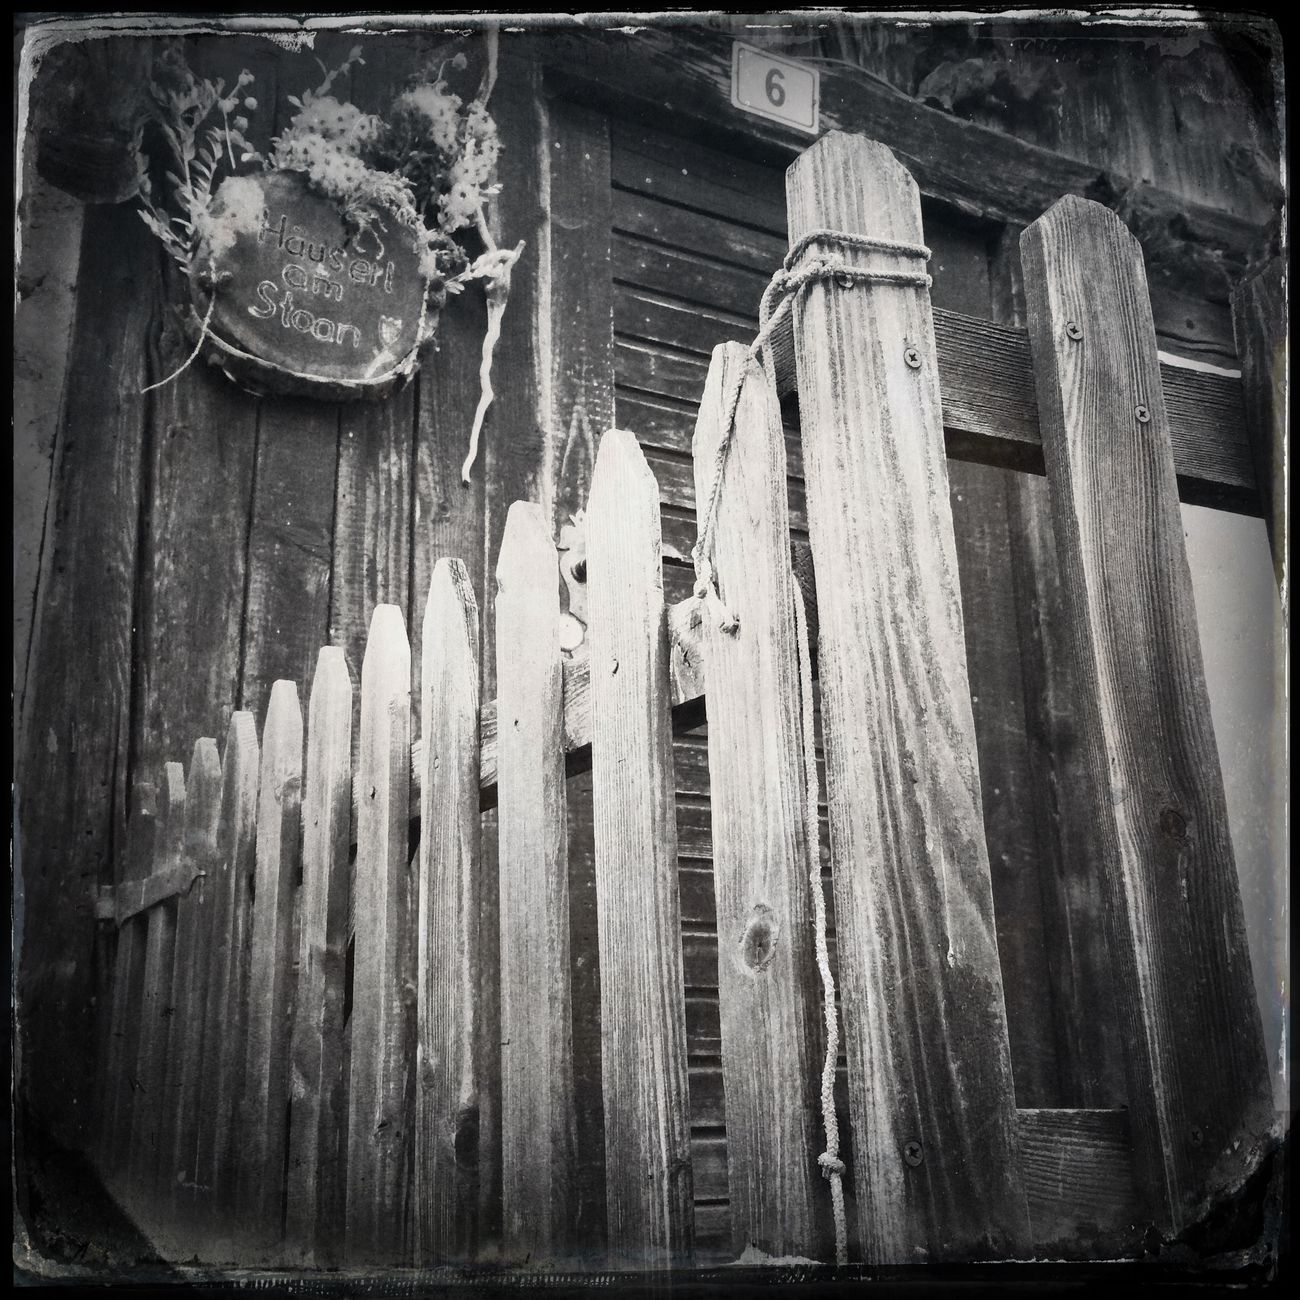 The fence oft the old house Hipstamatic Blackandwhite The_guido